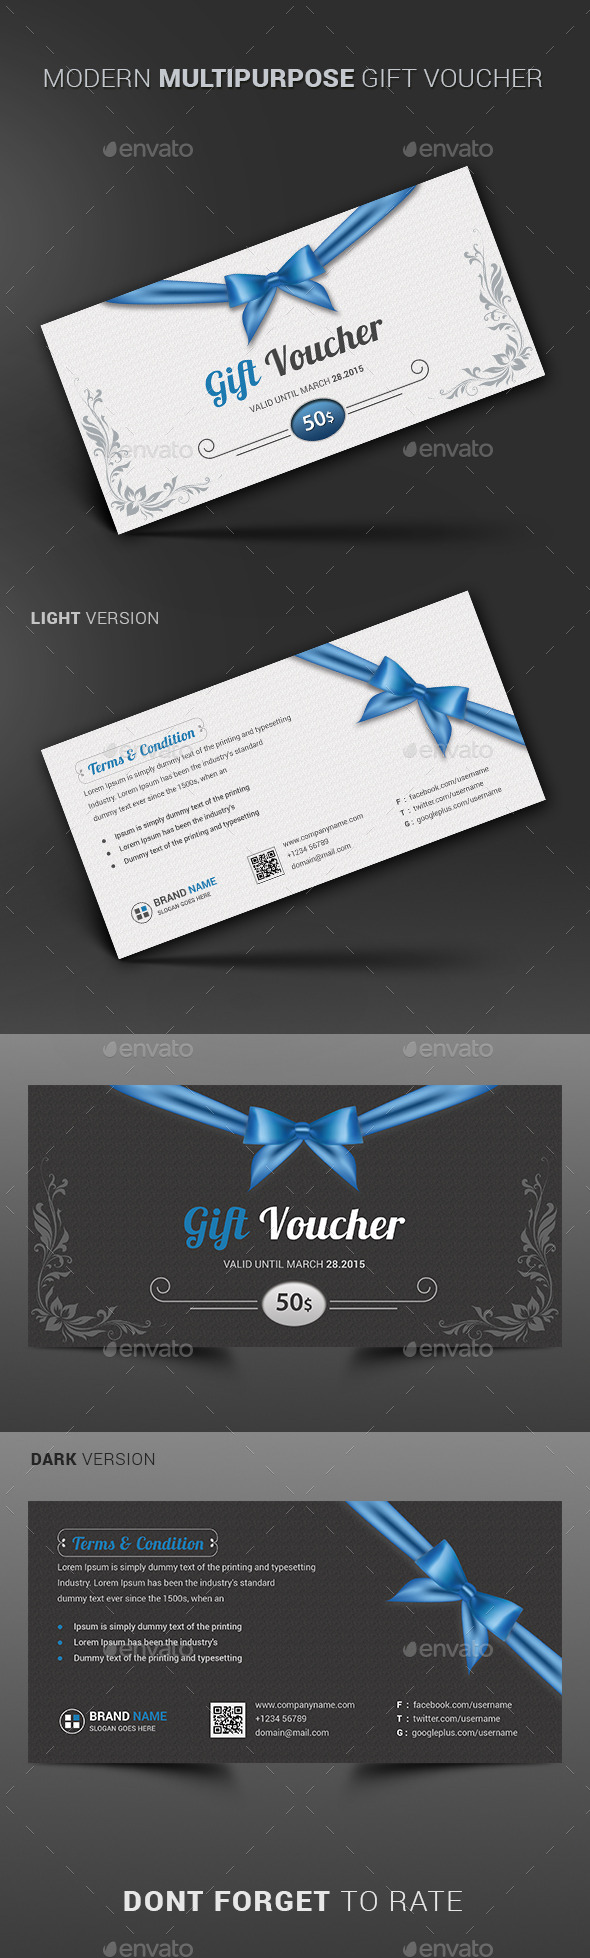 GraphicRiver Modern Multipurpose Gift Voucher 10914583